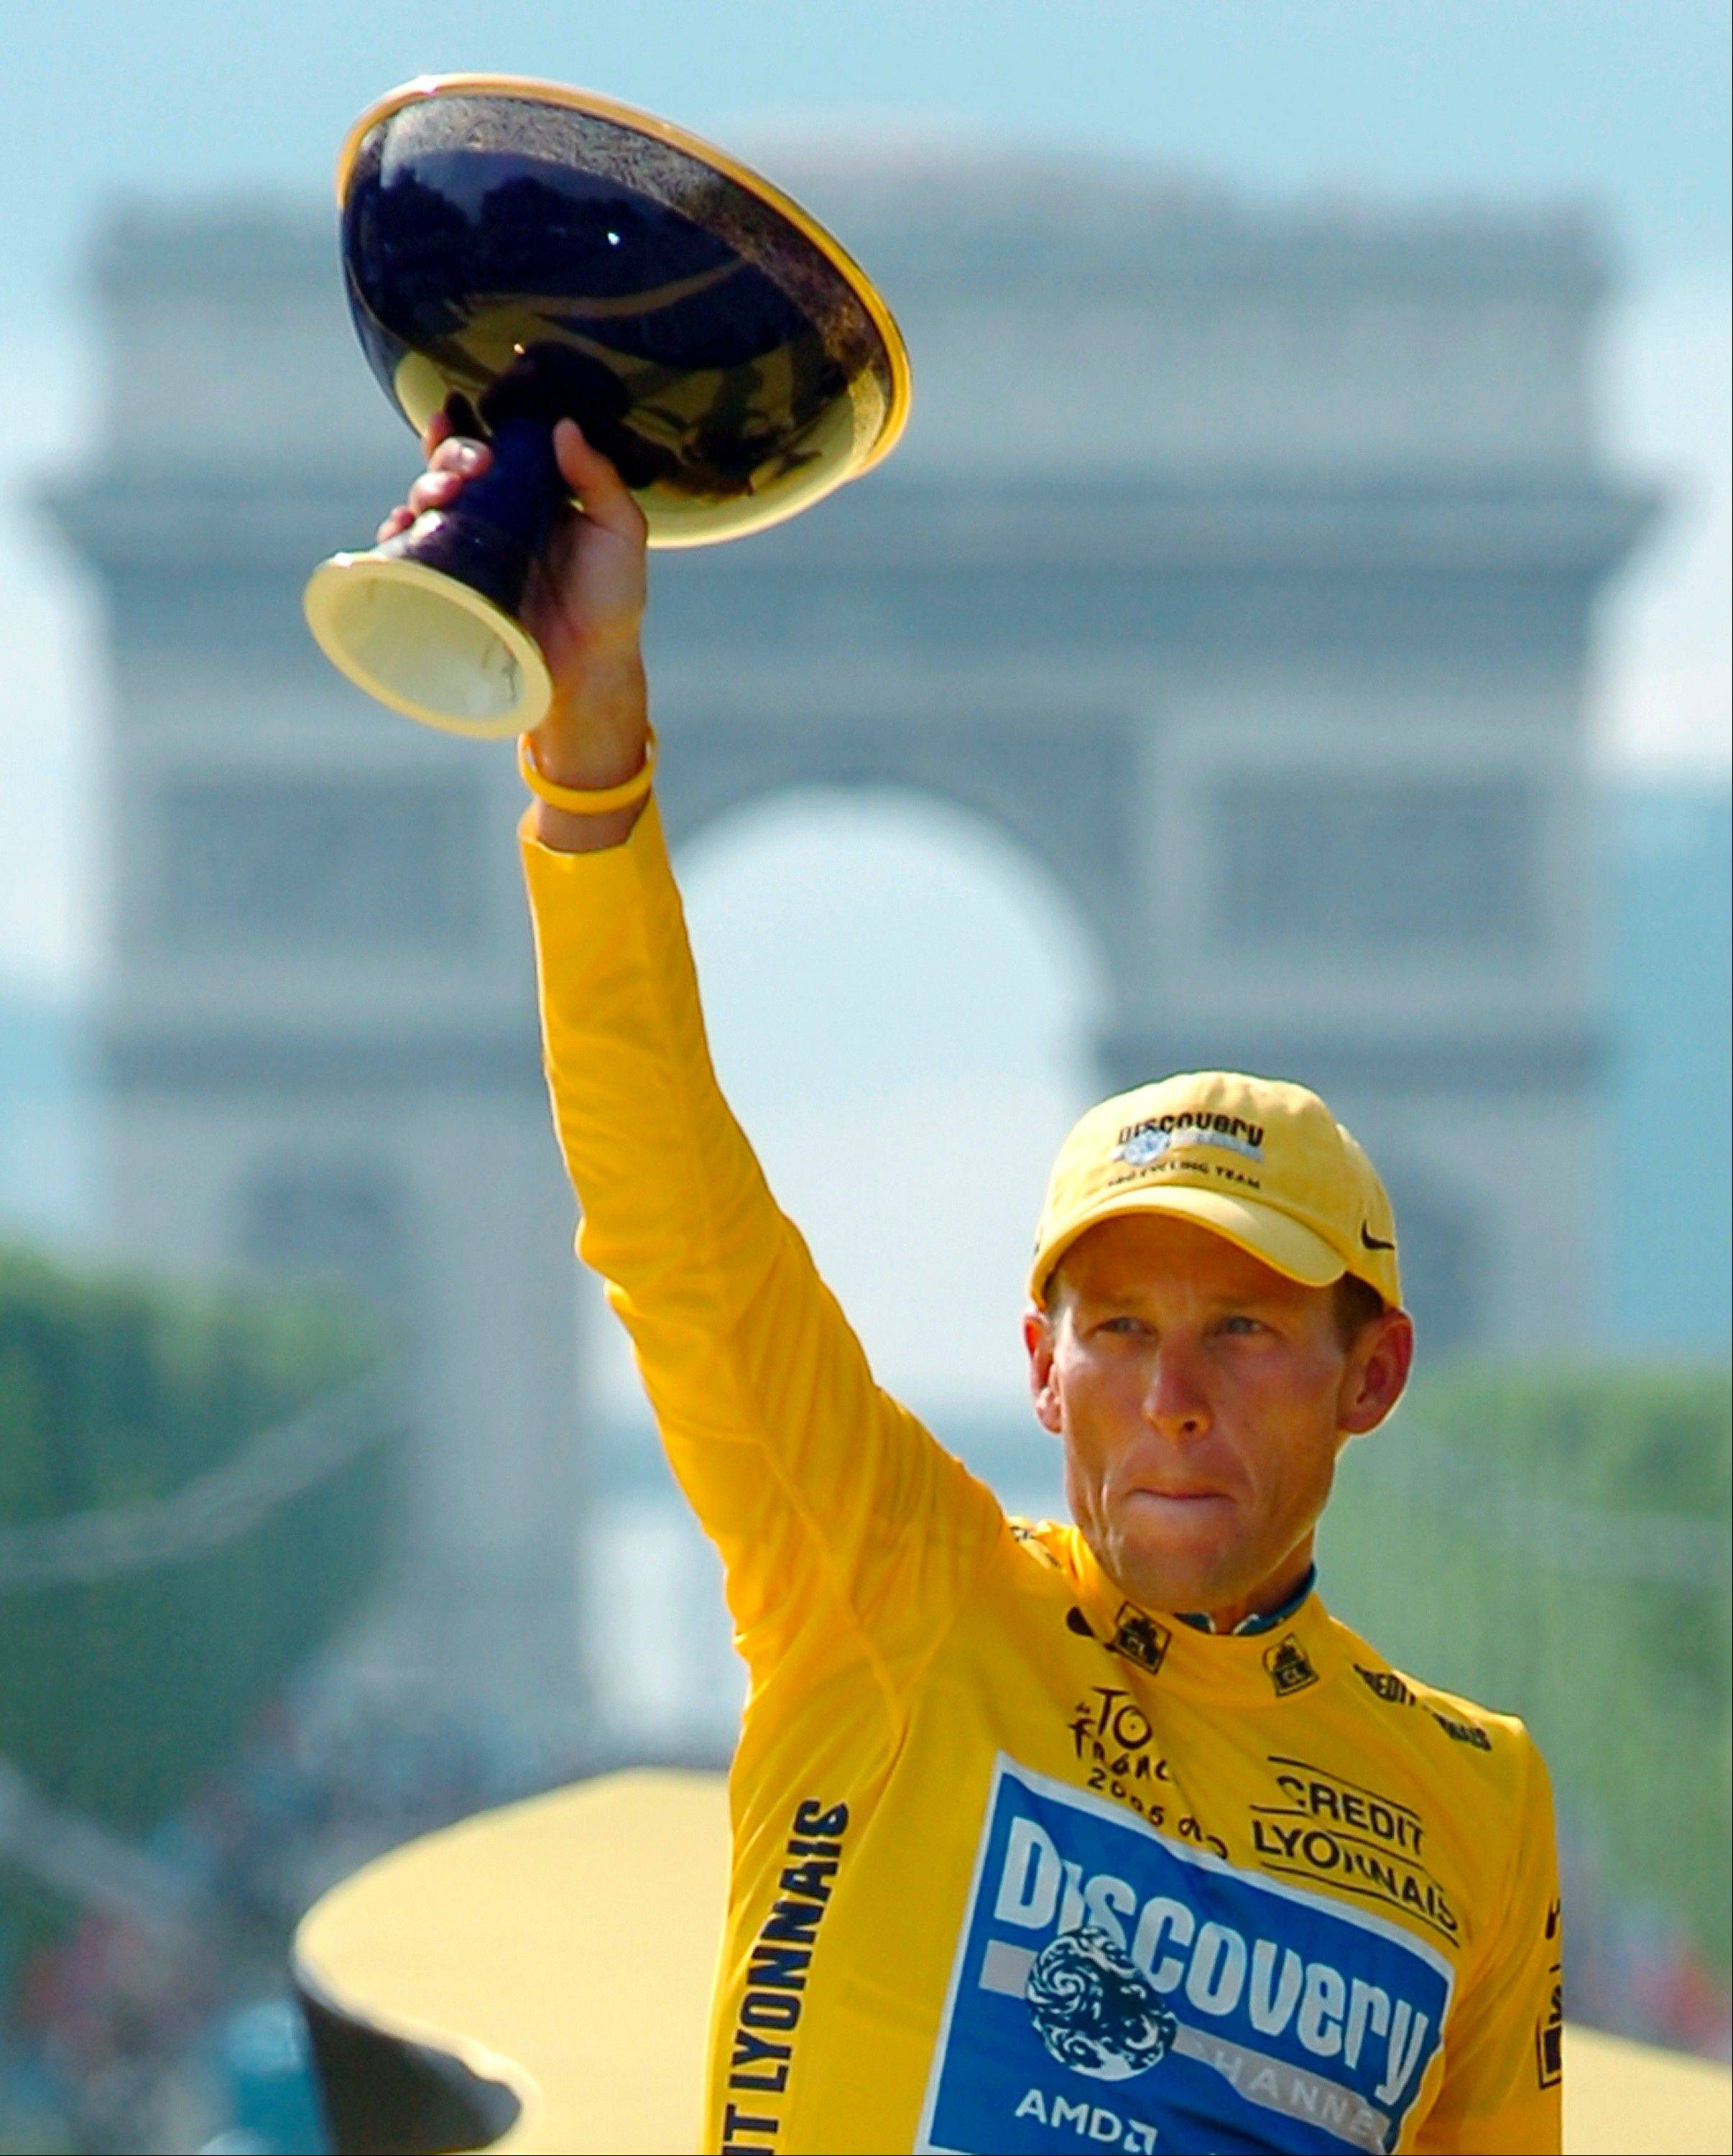 Lance Armstrong, here holding the winner's trophy in 2005 after claiming his seventh straight Tour de France, has been stripped of his titles as upheld by the UCI, the cycling governing body, on Monday.